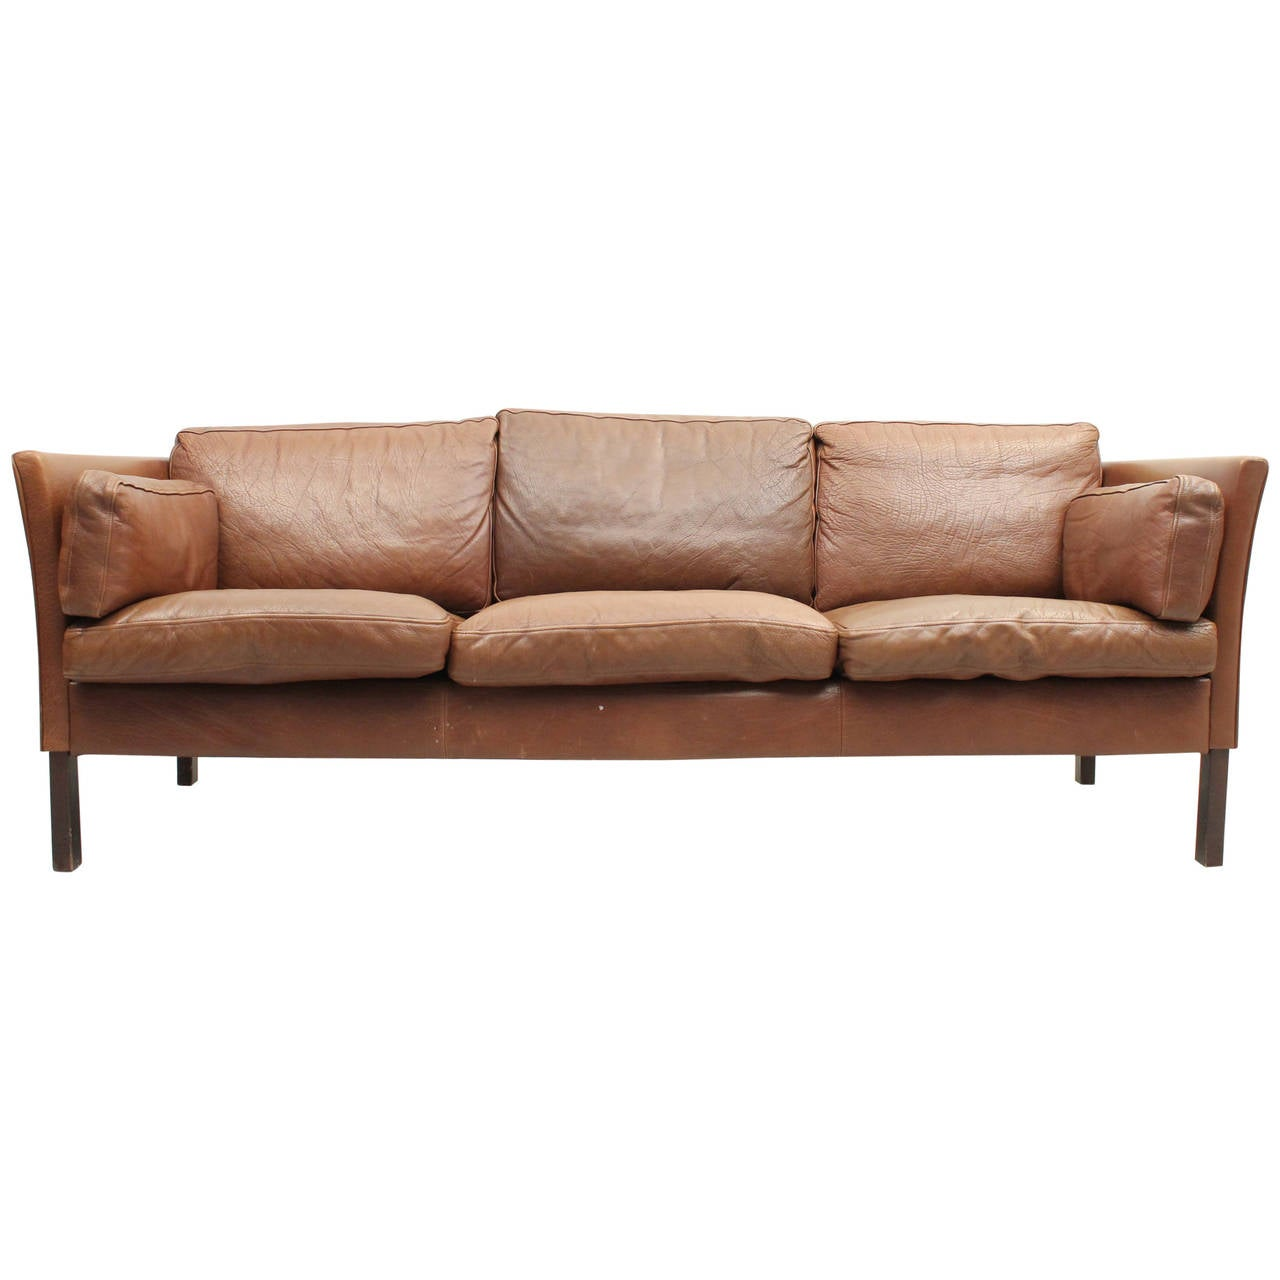 Danish mid century modern leather sofa at 1stdibs for Modern leather furniture